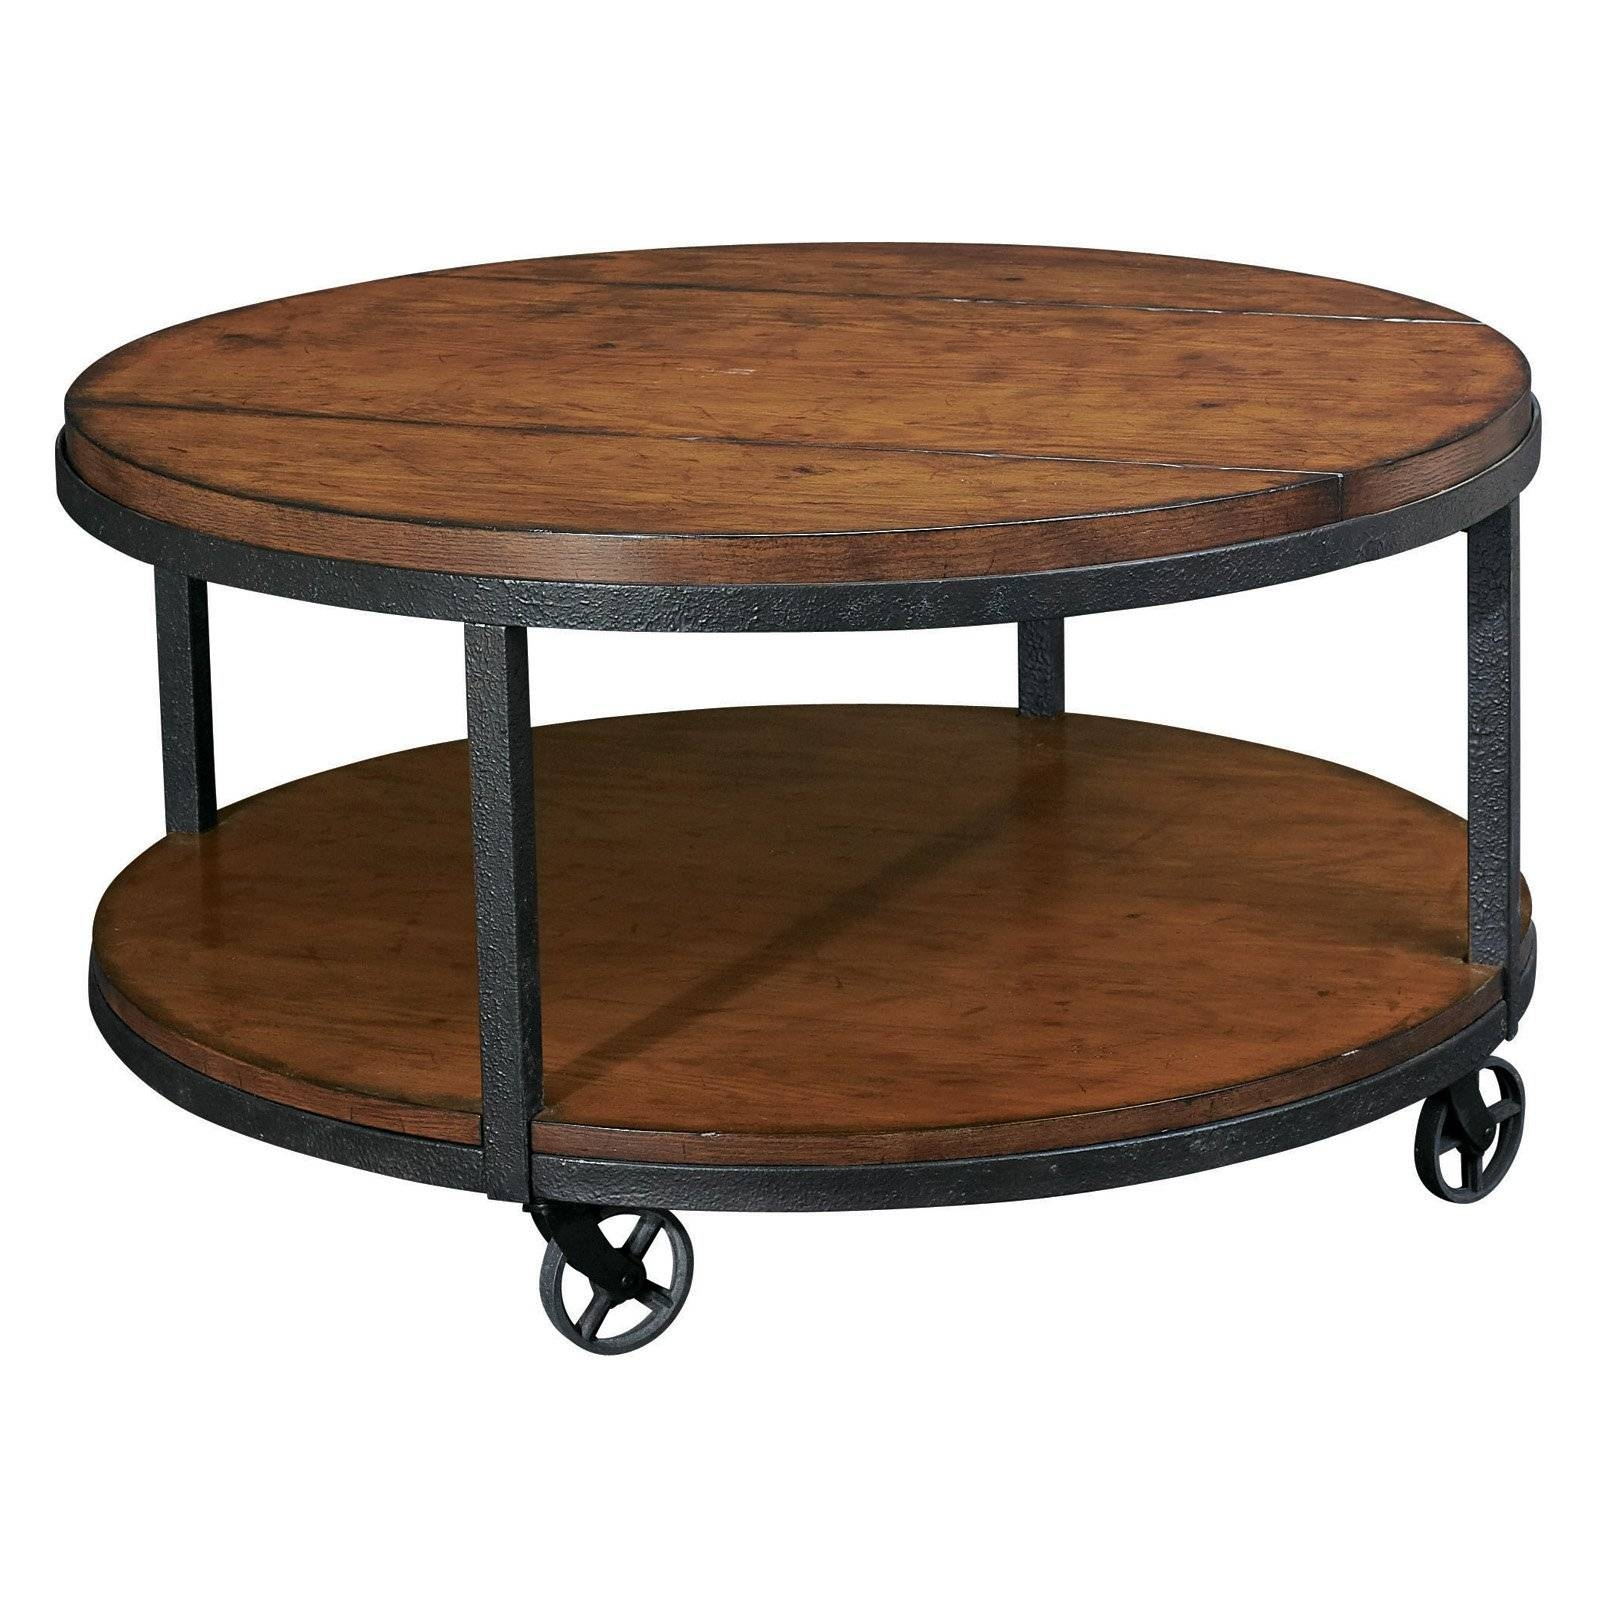 Enchanting Round Brown Oak Wood Iron Industrial Coffee Table within Rustic Coffee Tables With Bottom Shelf (Image 20 of 30)